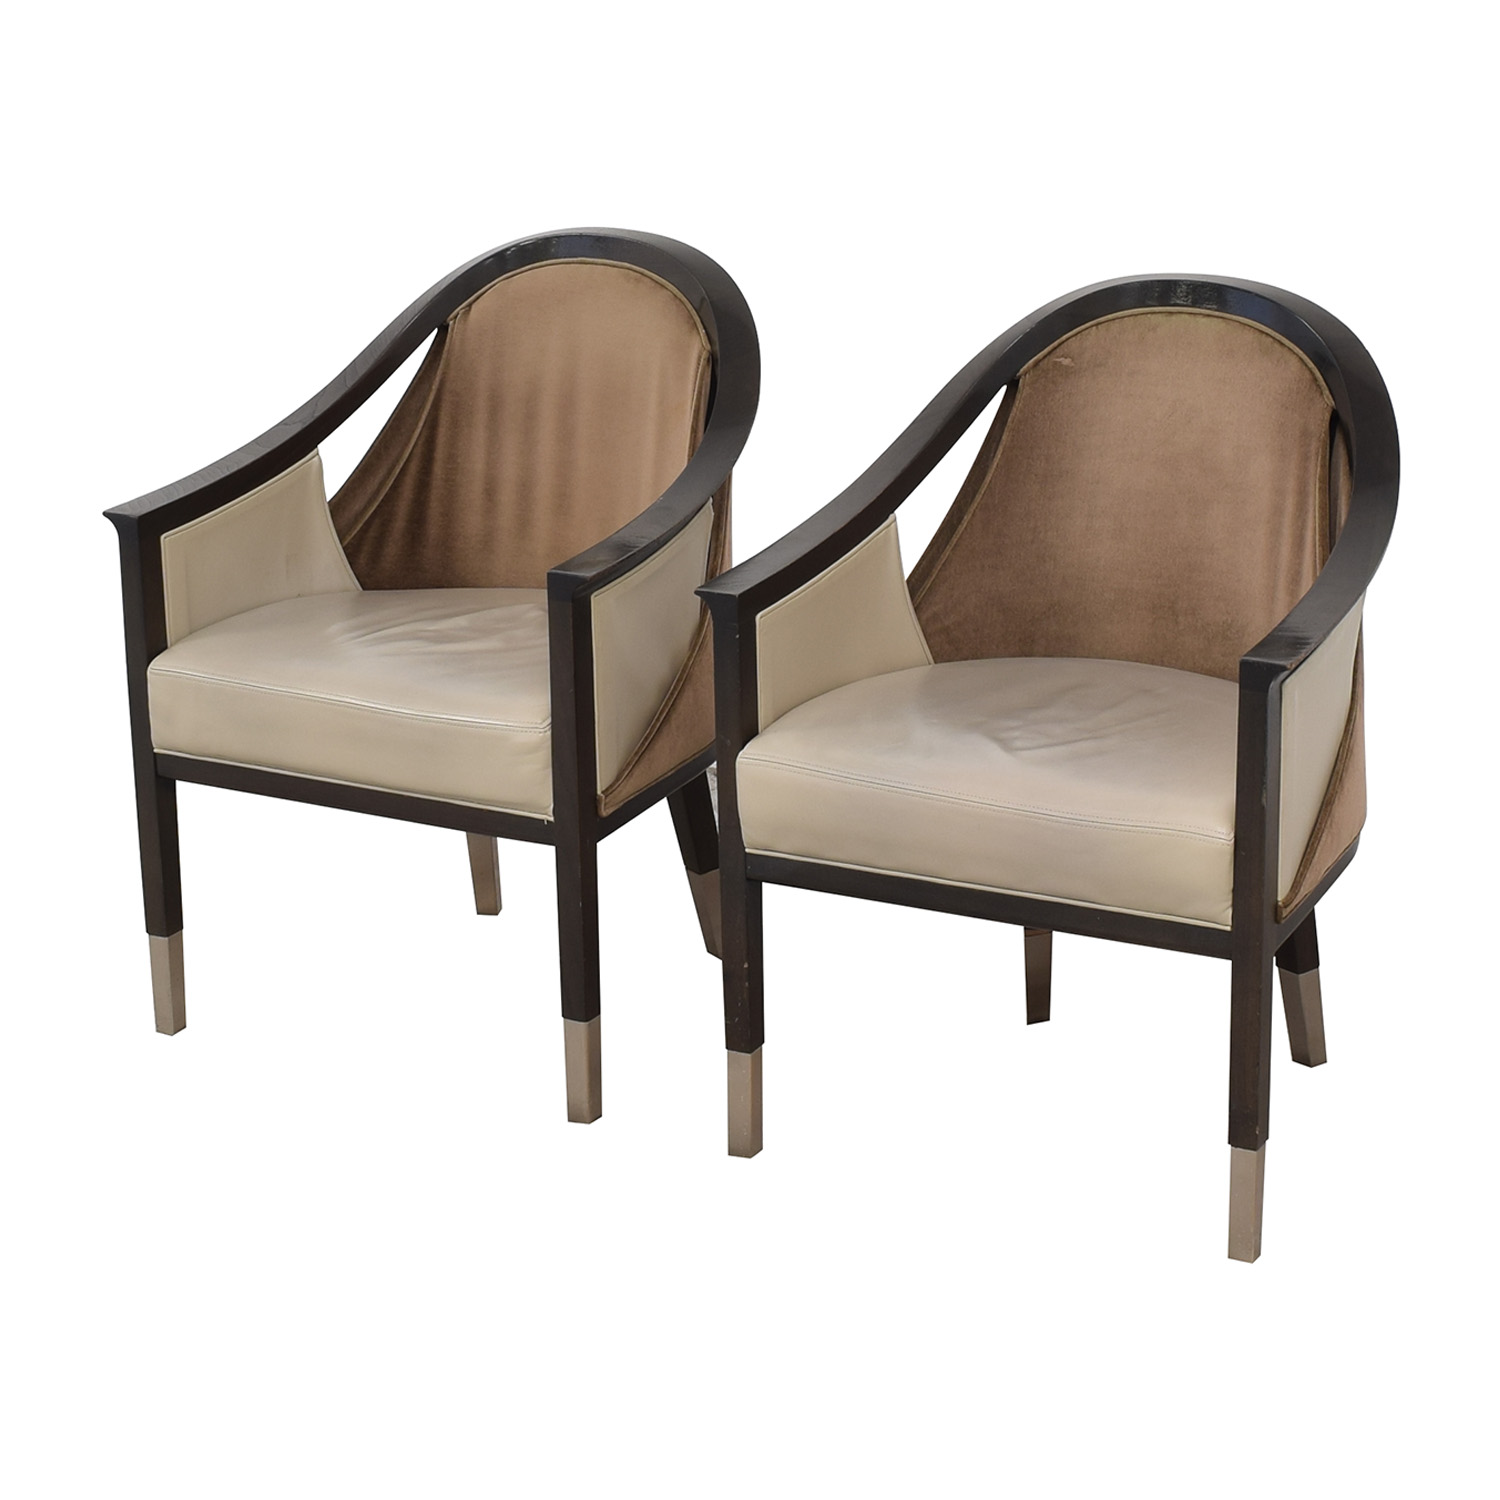 shop Allied Form Works Allied Works Eleven Madison Park Dining Room Chairs online